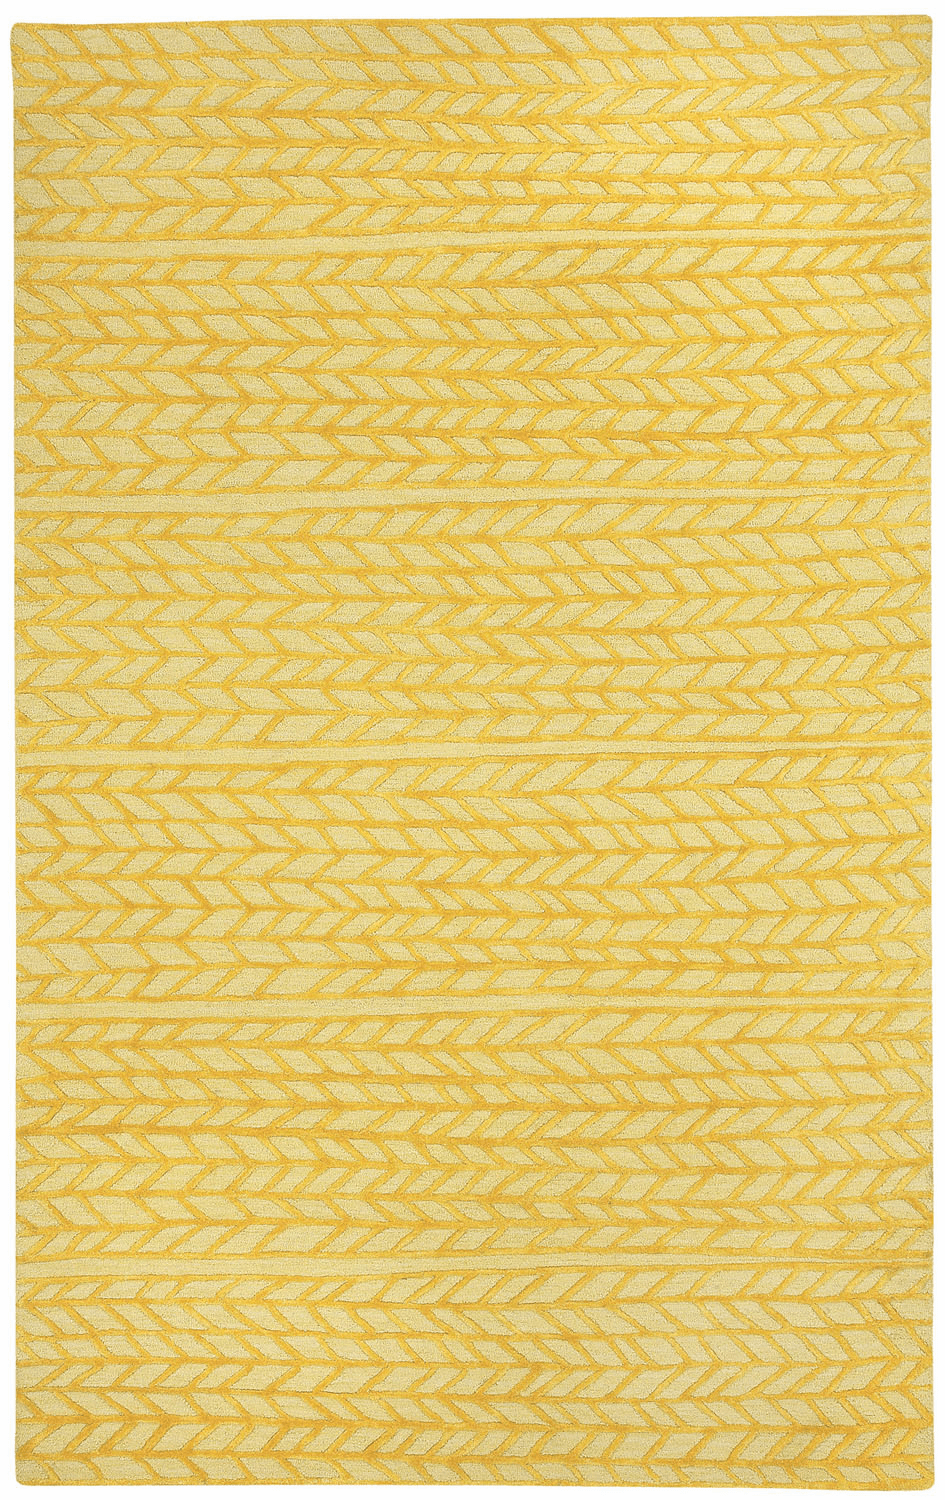 Hand Tufted Yellow Rug